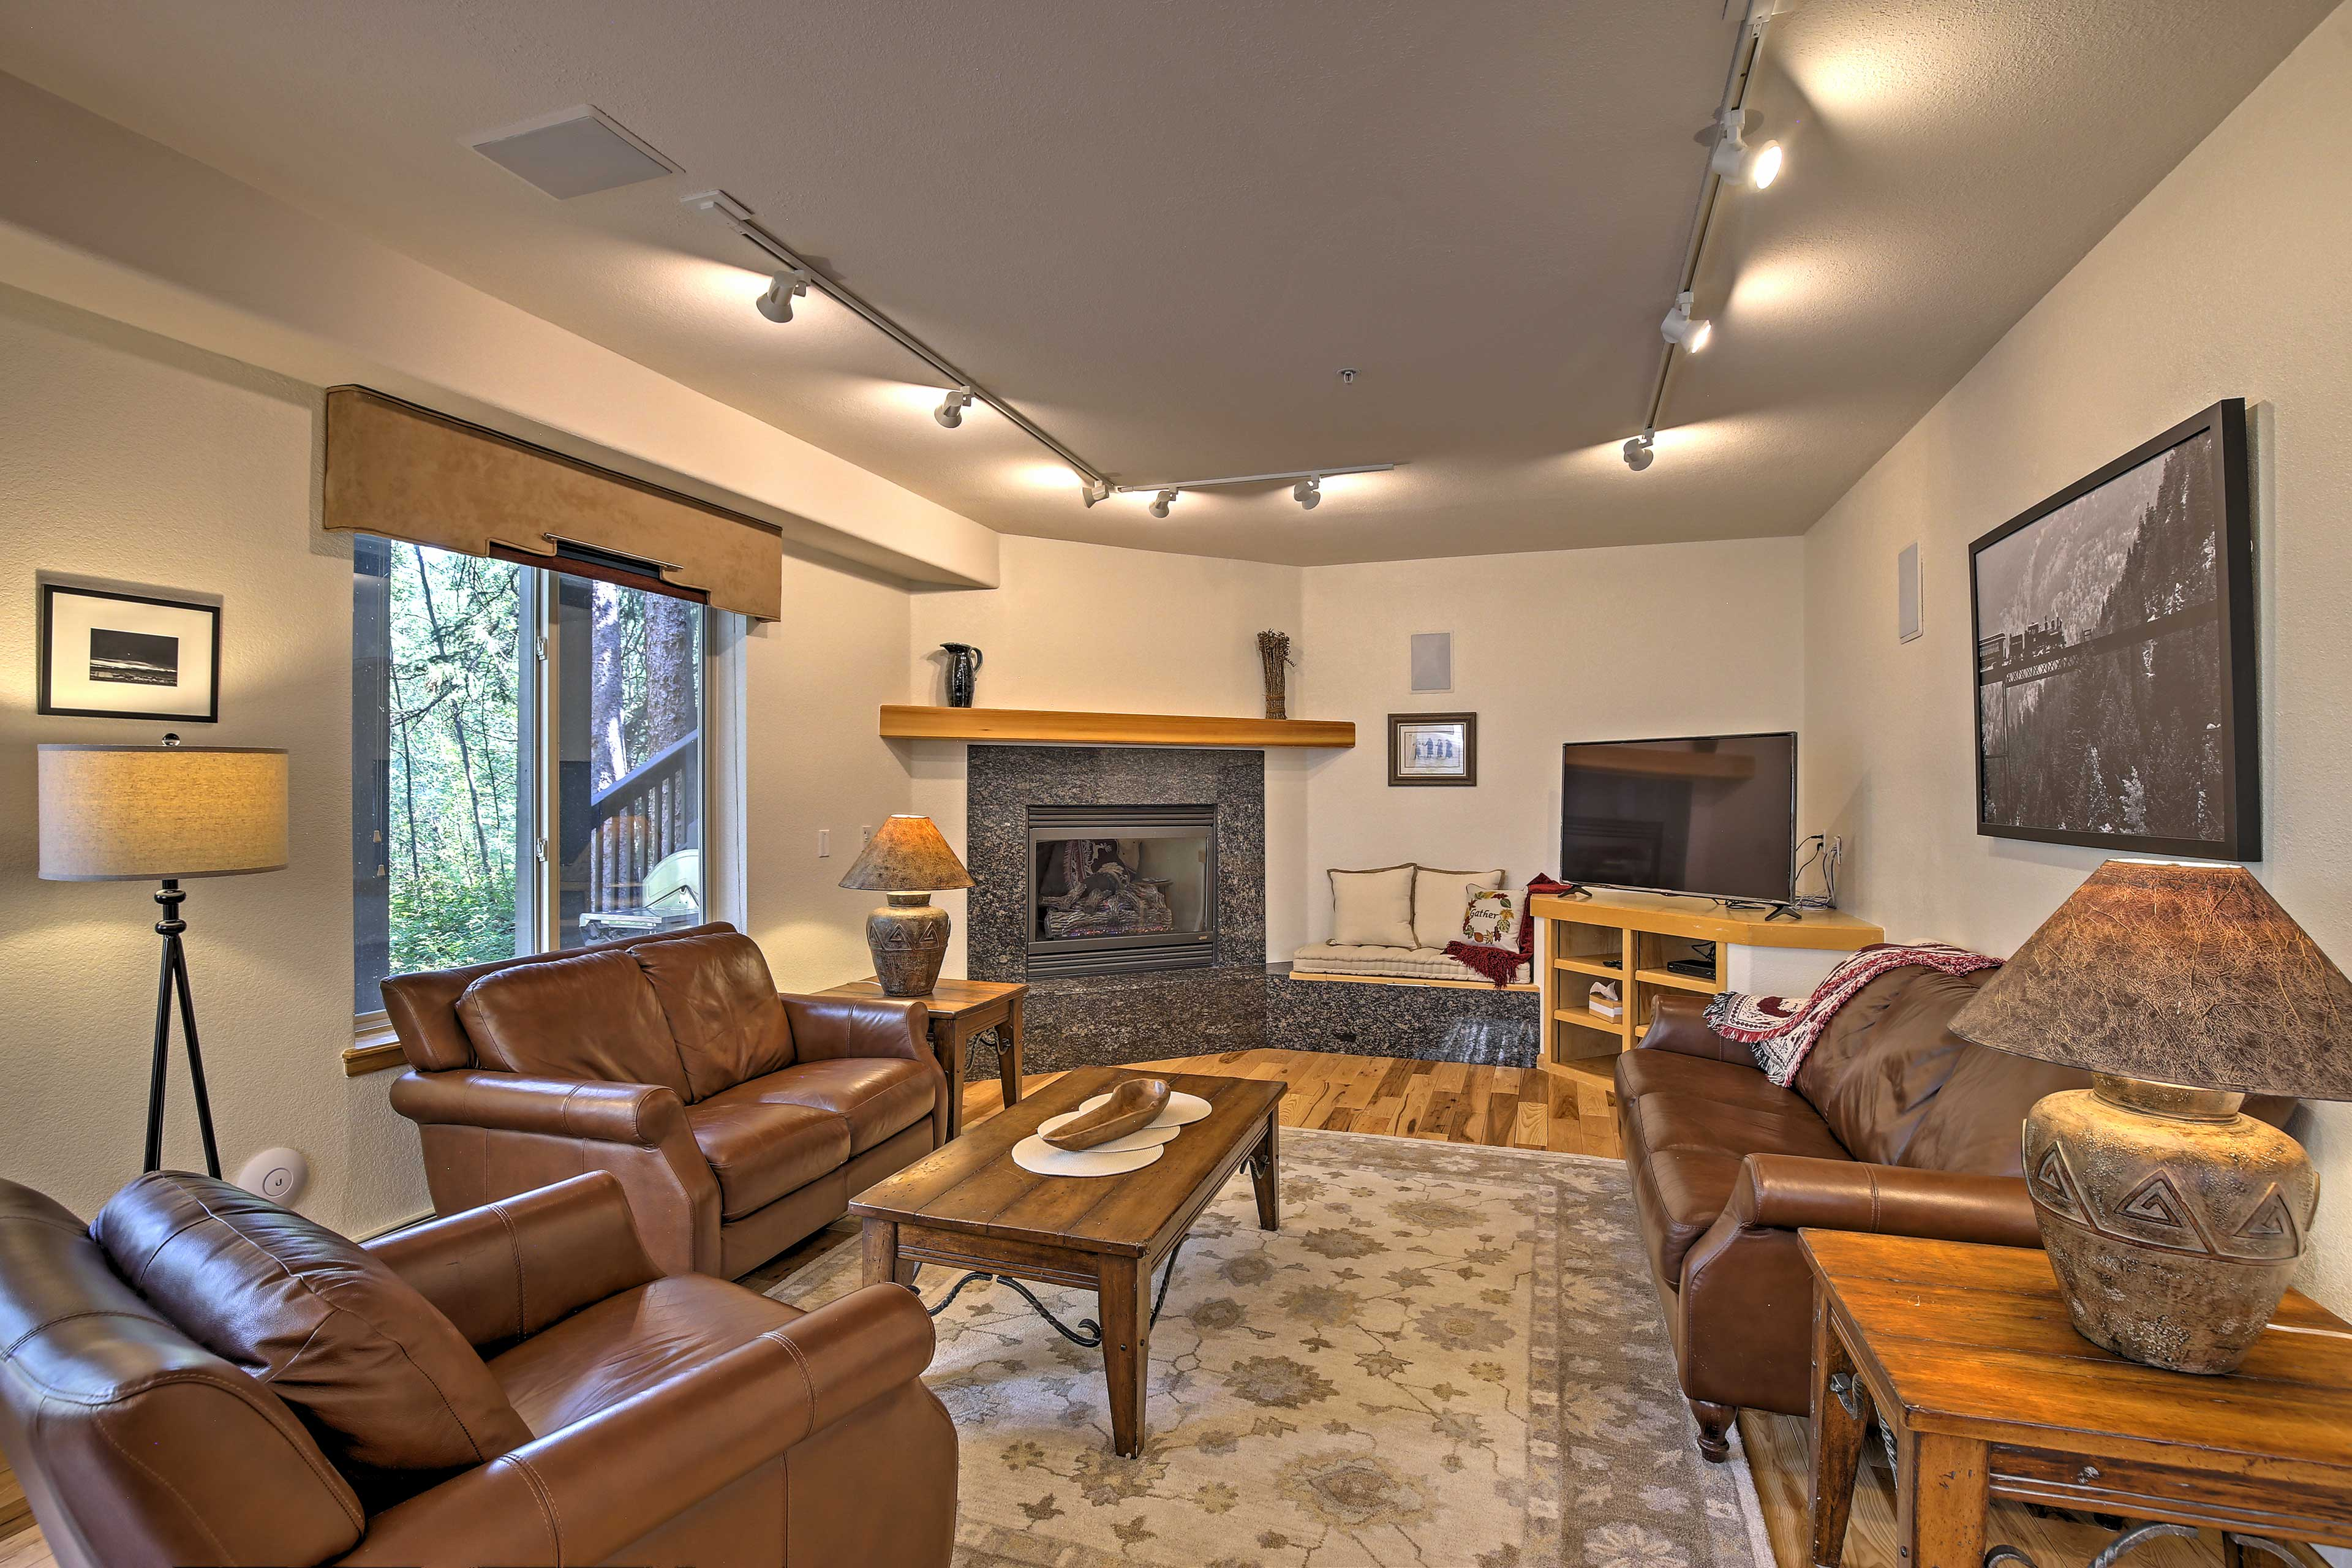 This condo boasts new stainless steel appliances, carpet, and custom furniture!